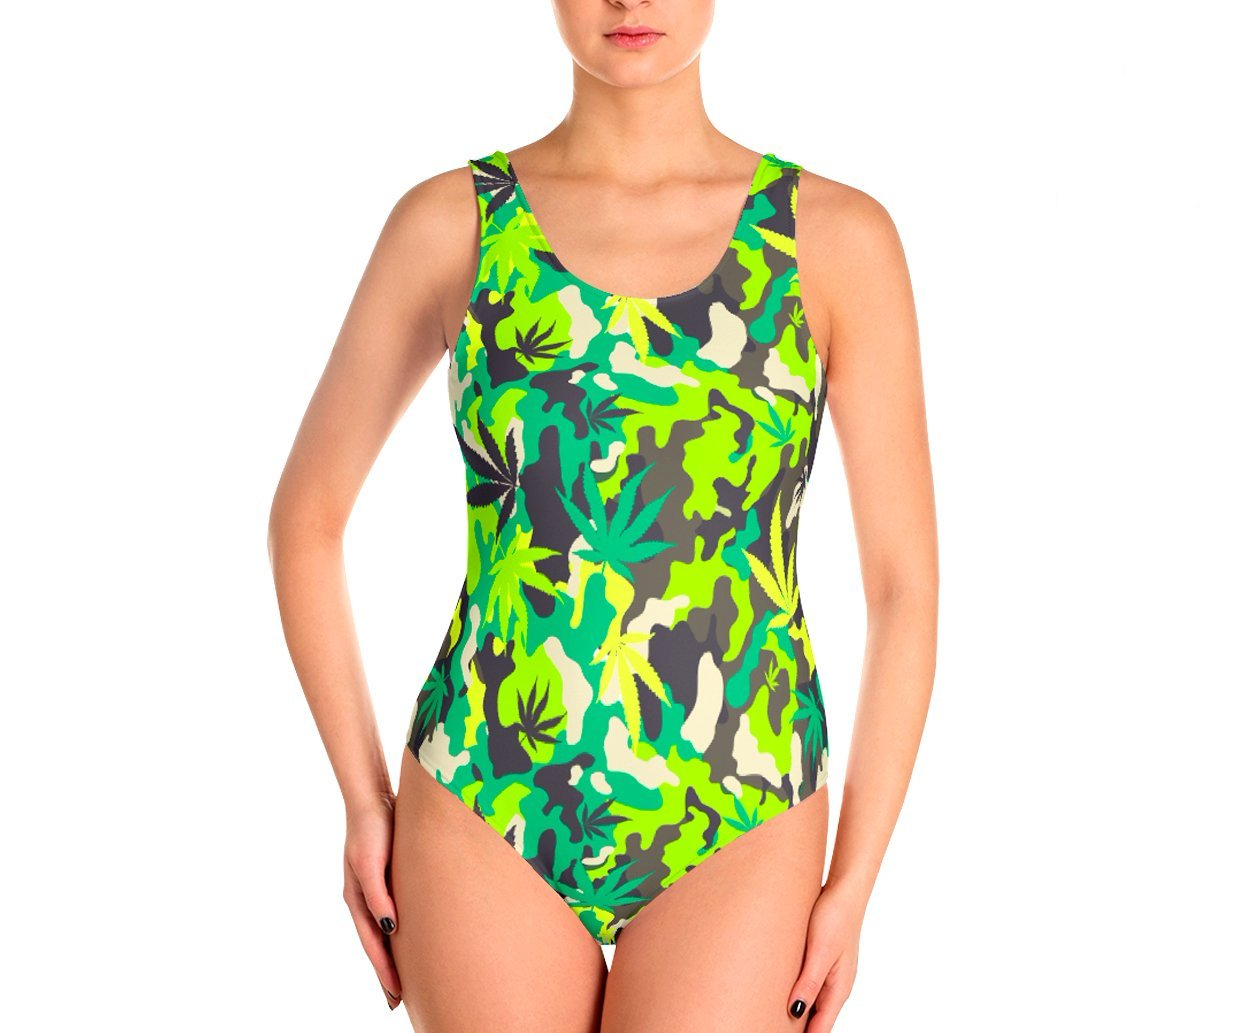 Swimsuit - Green Camo